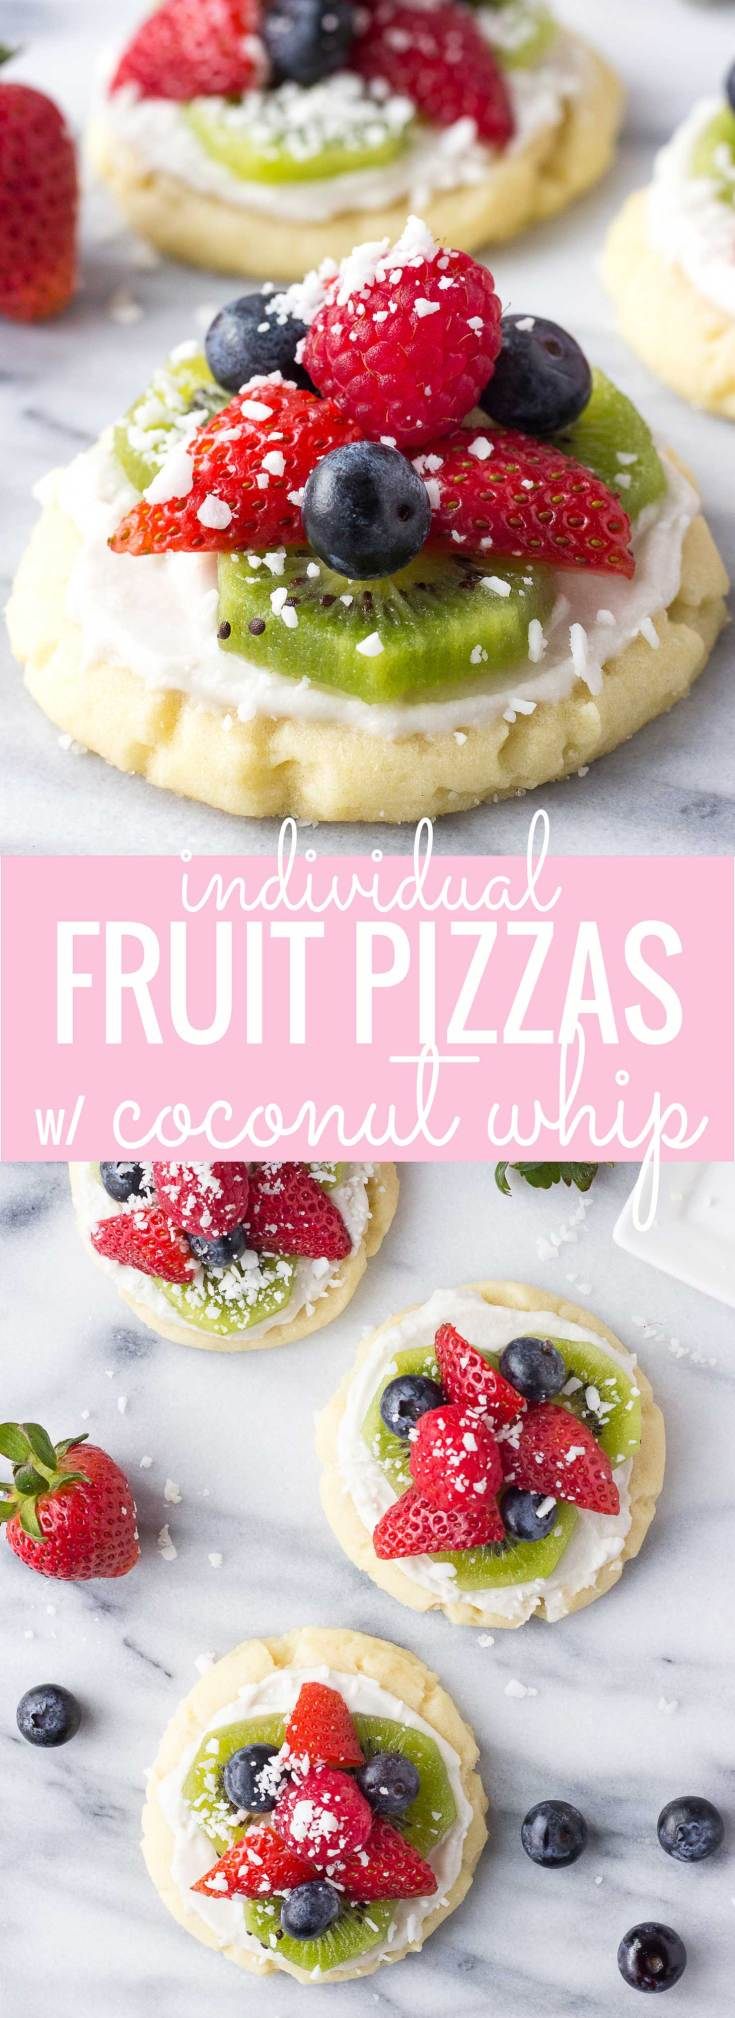 Individual Fruit Pizzas with Coconut Whip - soft sugar cookies topped with coconut whipped cream fresh berries, and kiwi; a healthier alternative to traditional fruit pizza!